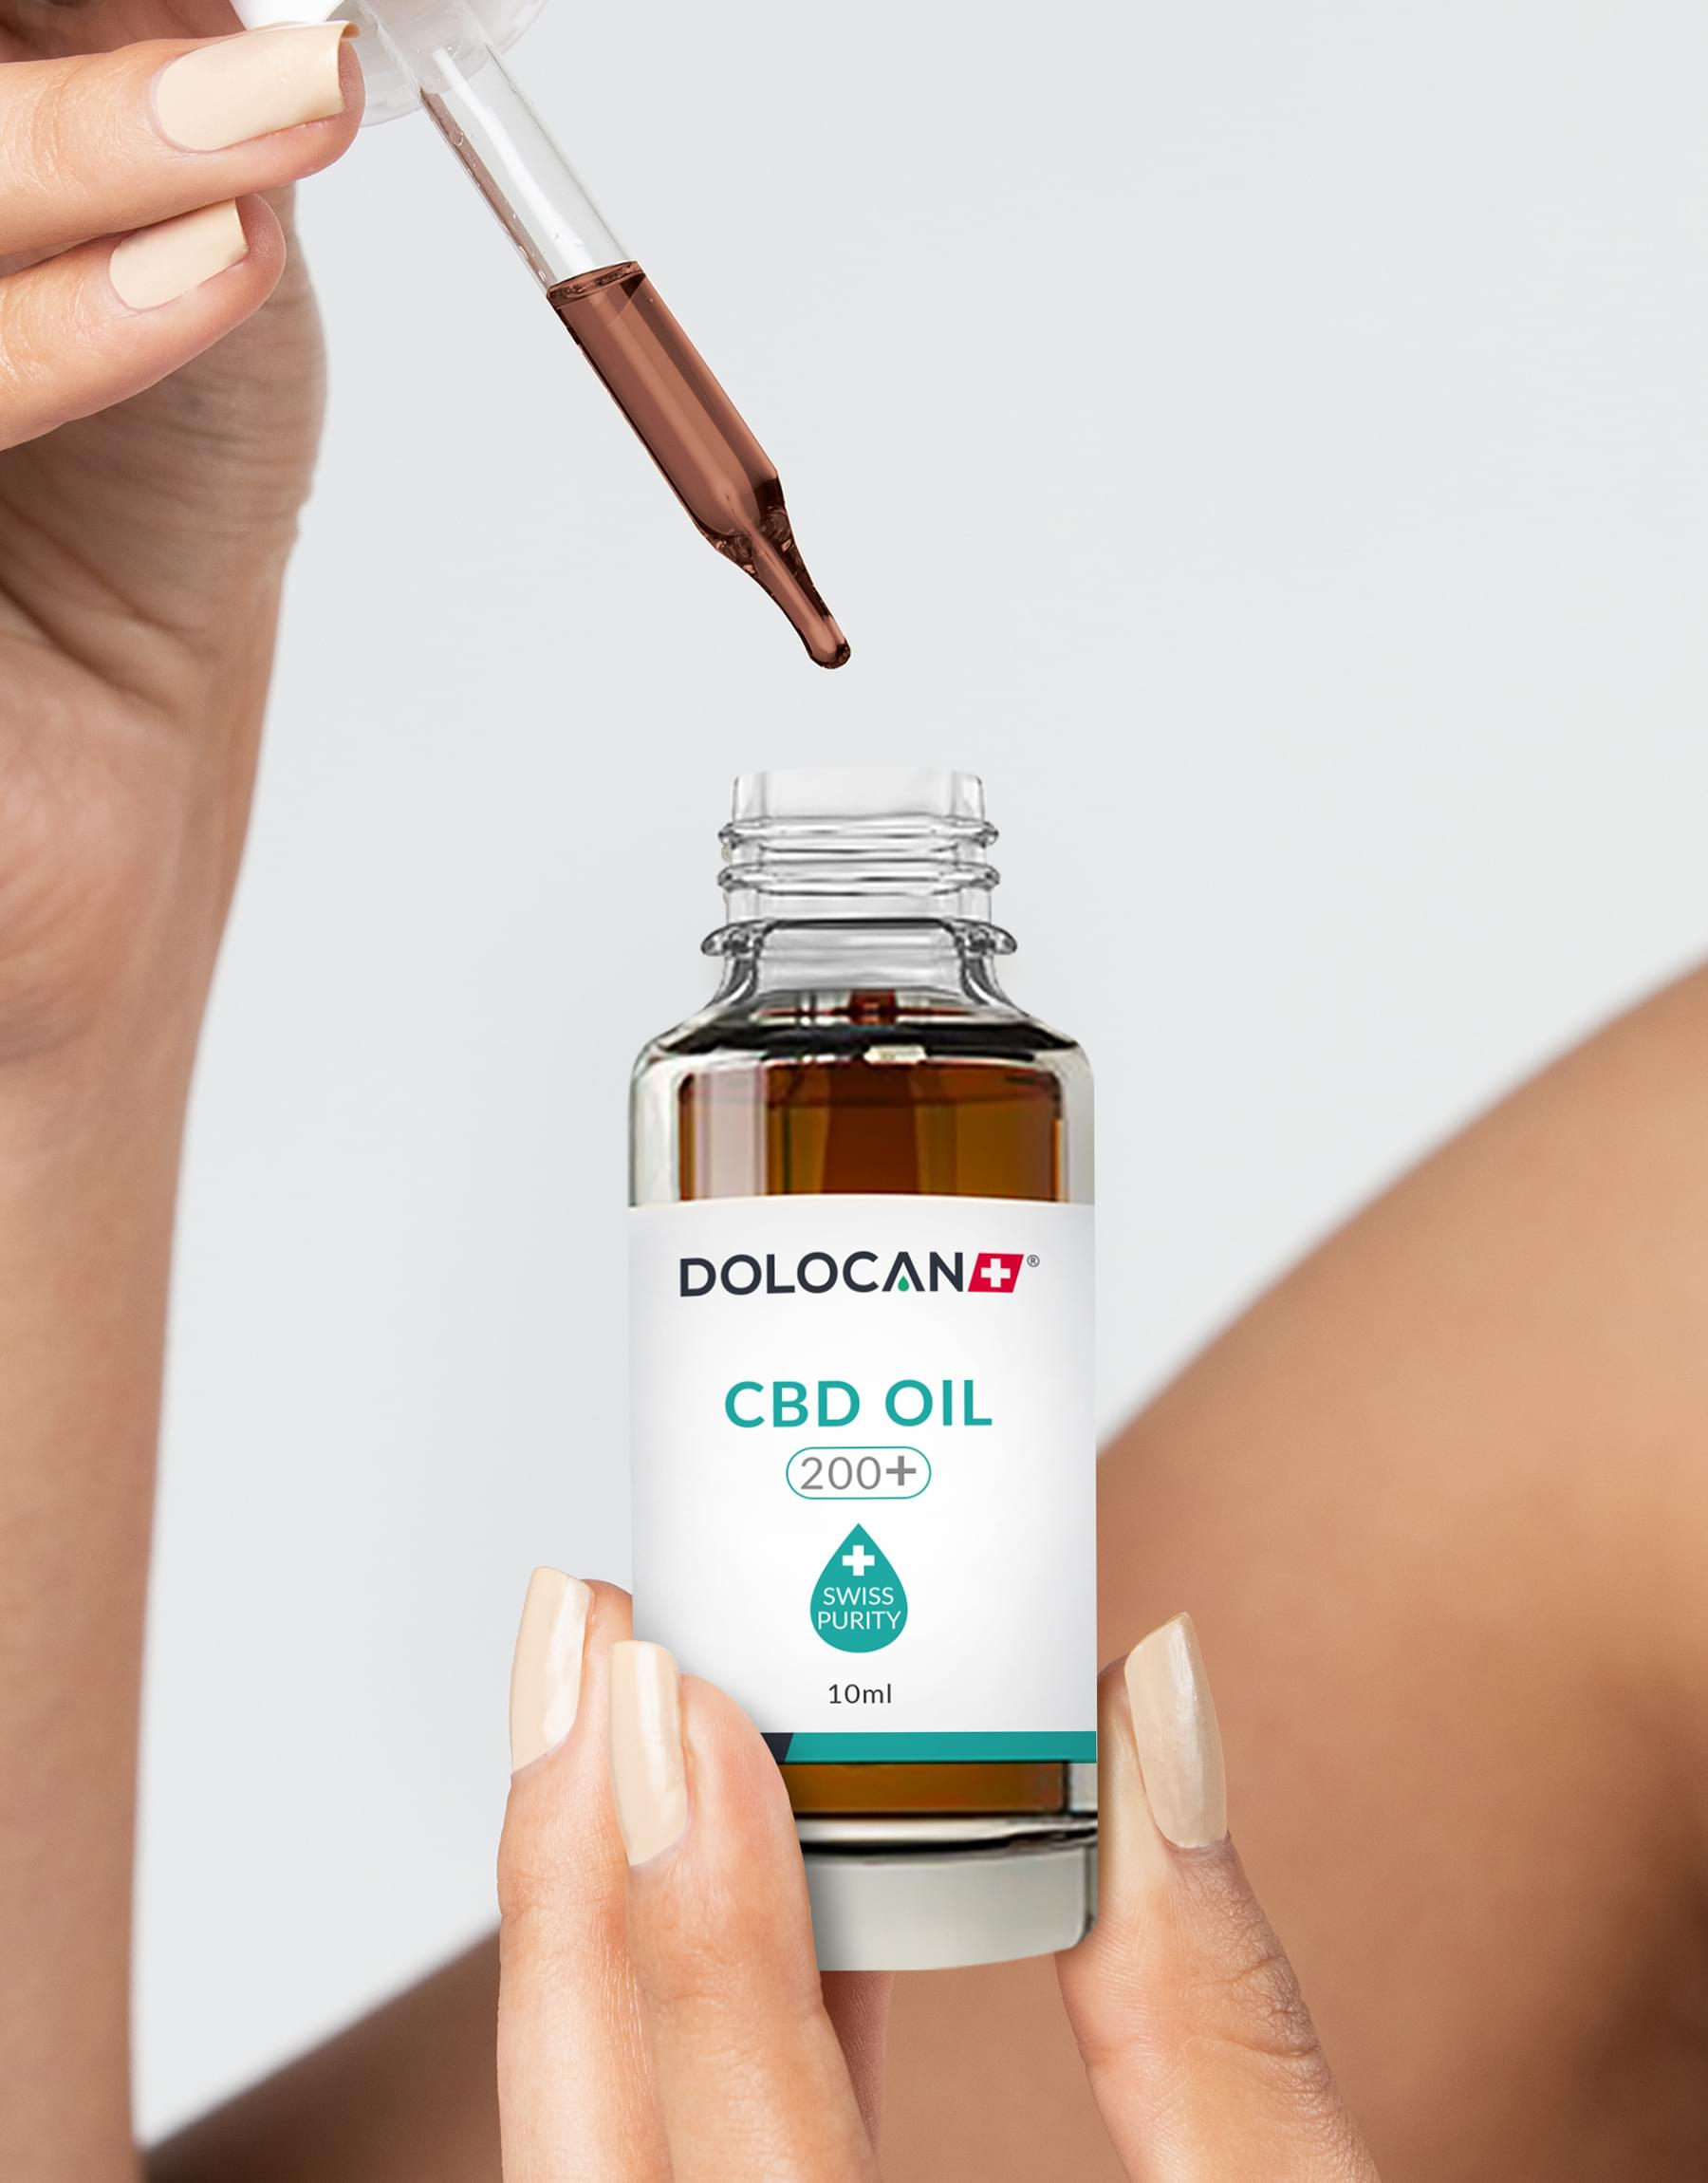 DOLOCAN Packaging